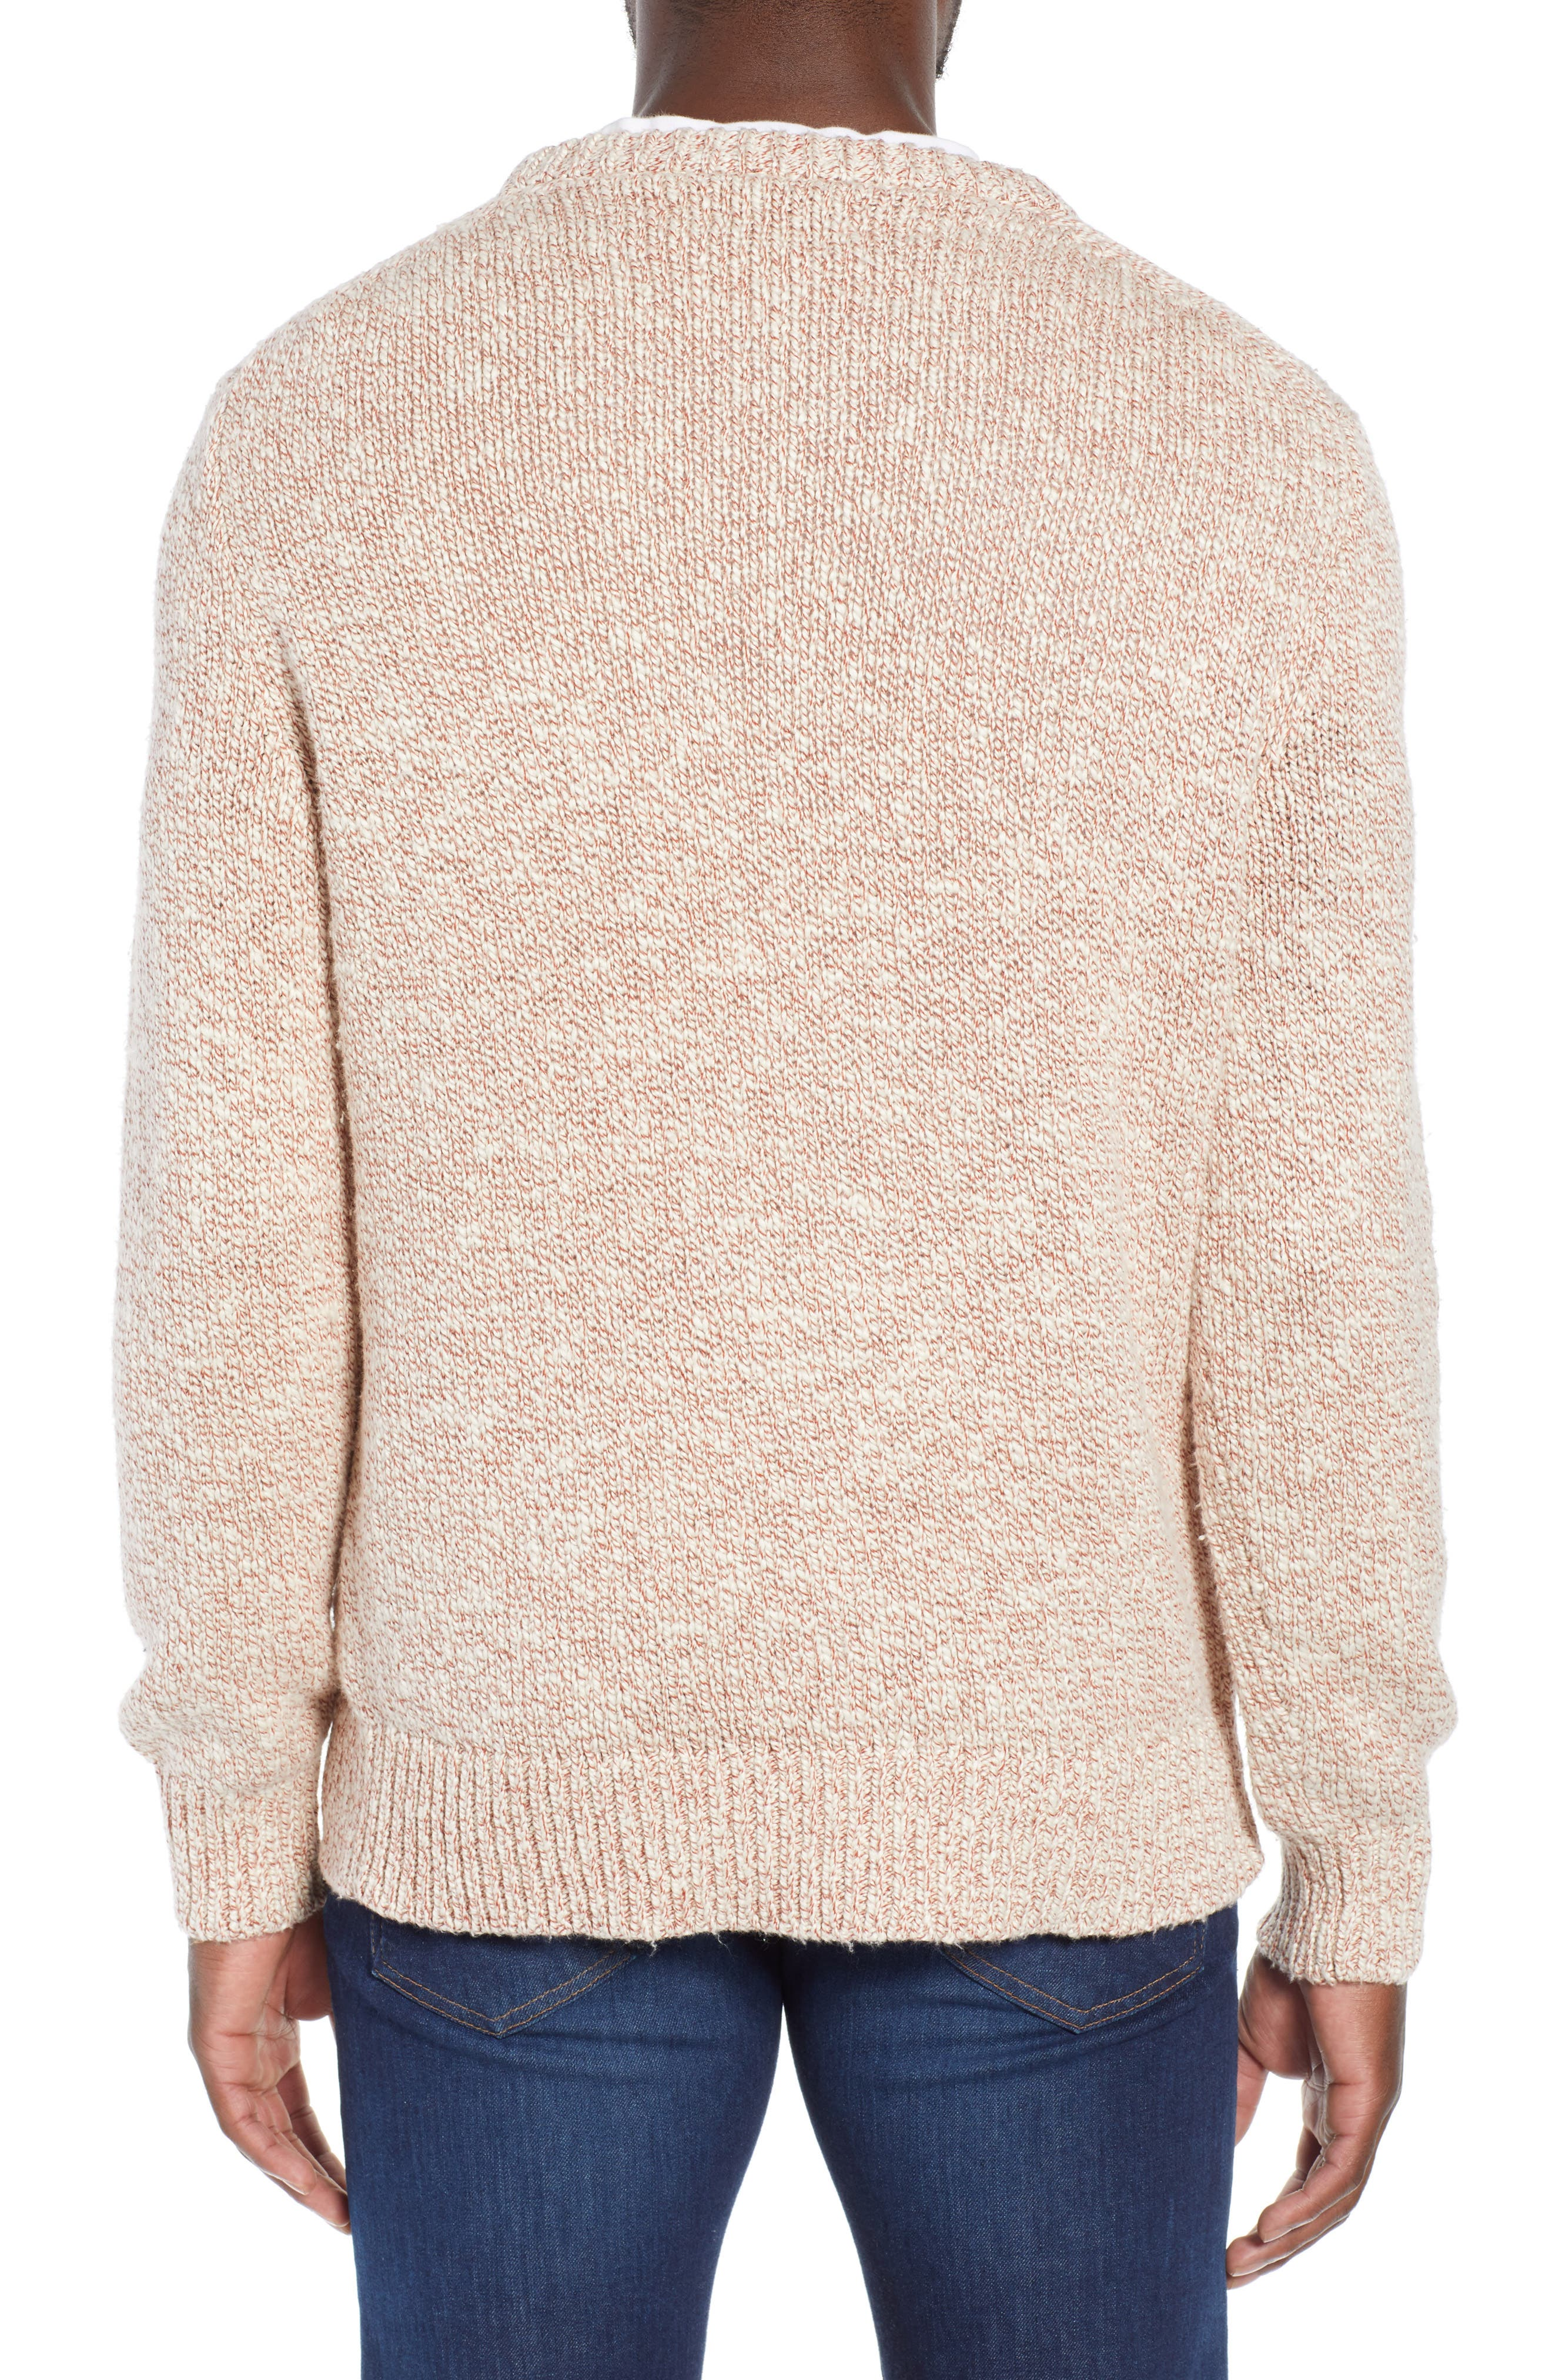 Wallace & Barnes Crewneck Marled Cotton Sweater,                             Alternate thumbnail 2, color,                             TERRACOTTA